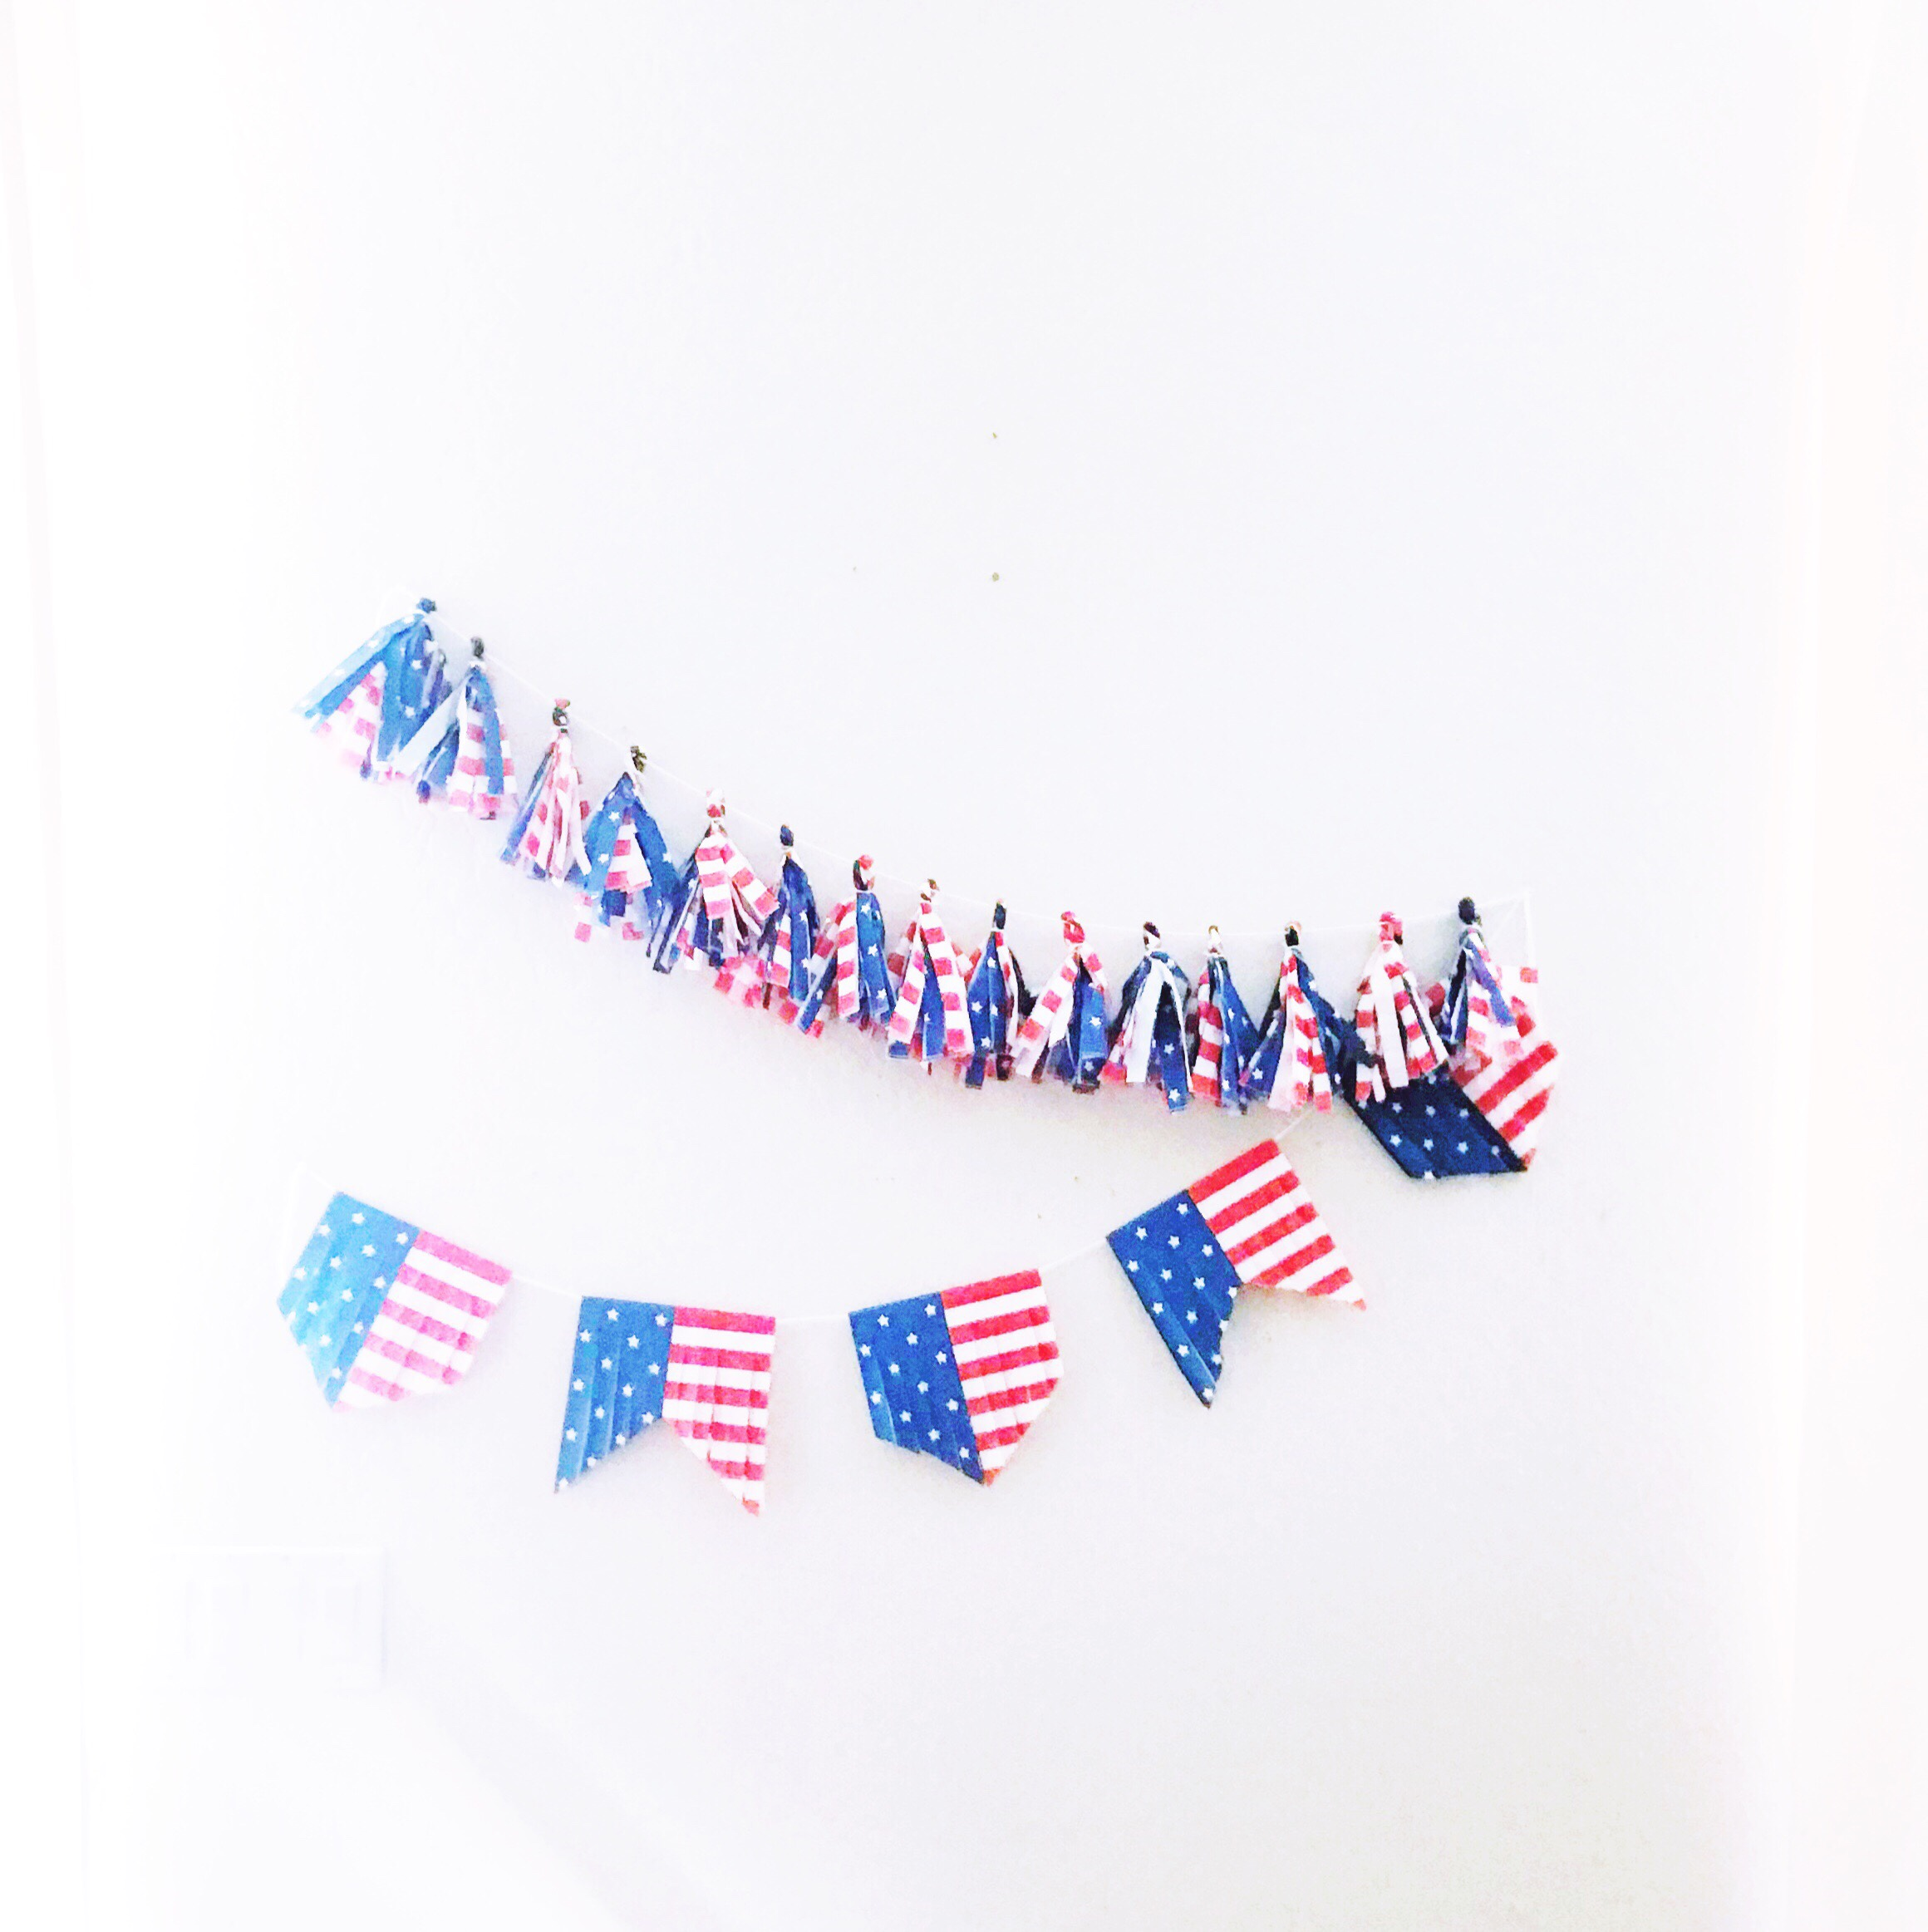 DIY paper napkin garland, DIY Paper Napkin tassels garland, DIY 4th of July Banner, DIY 4th of July Garland, 4th of July decorations